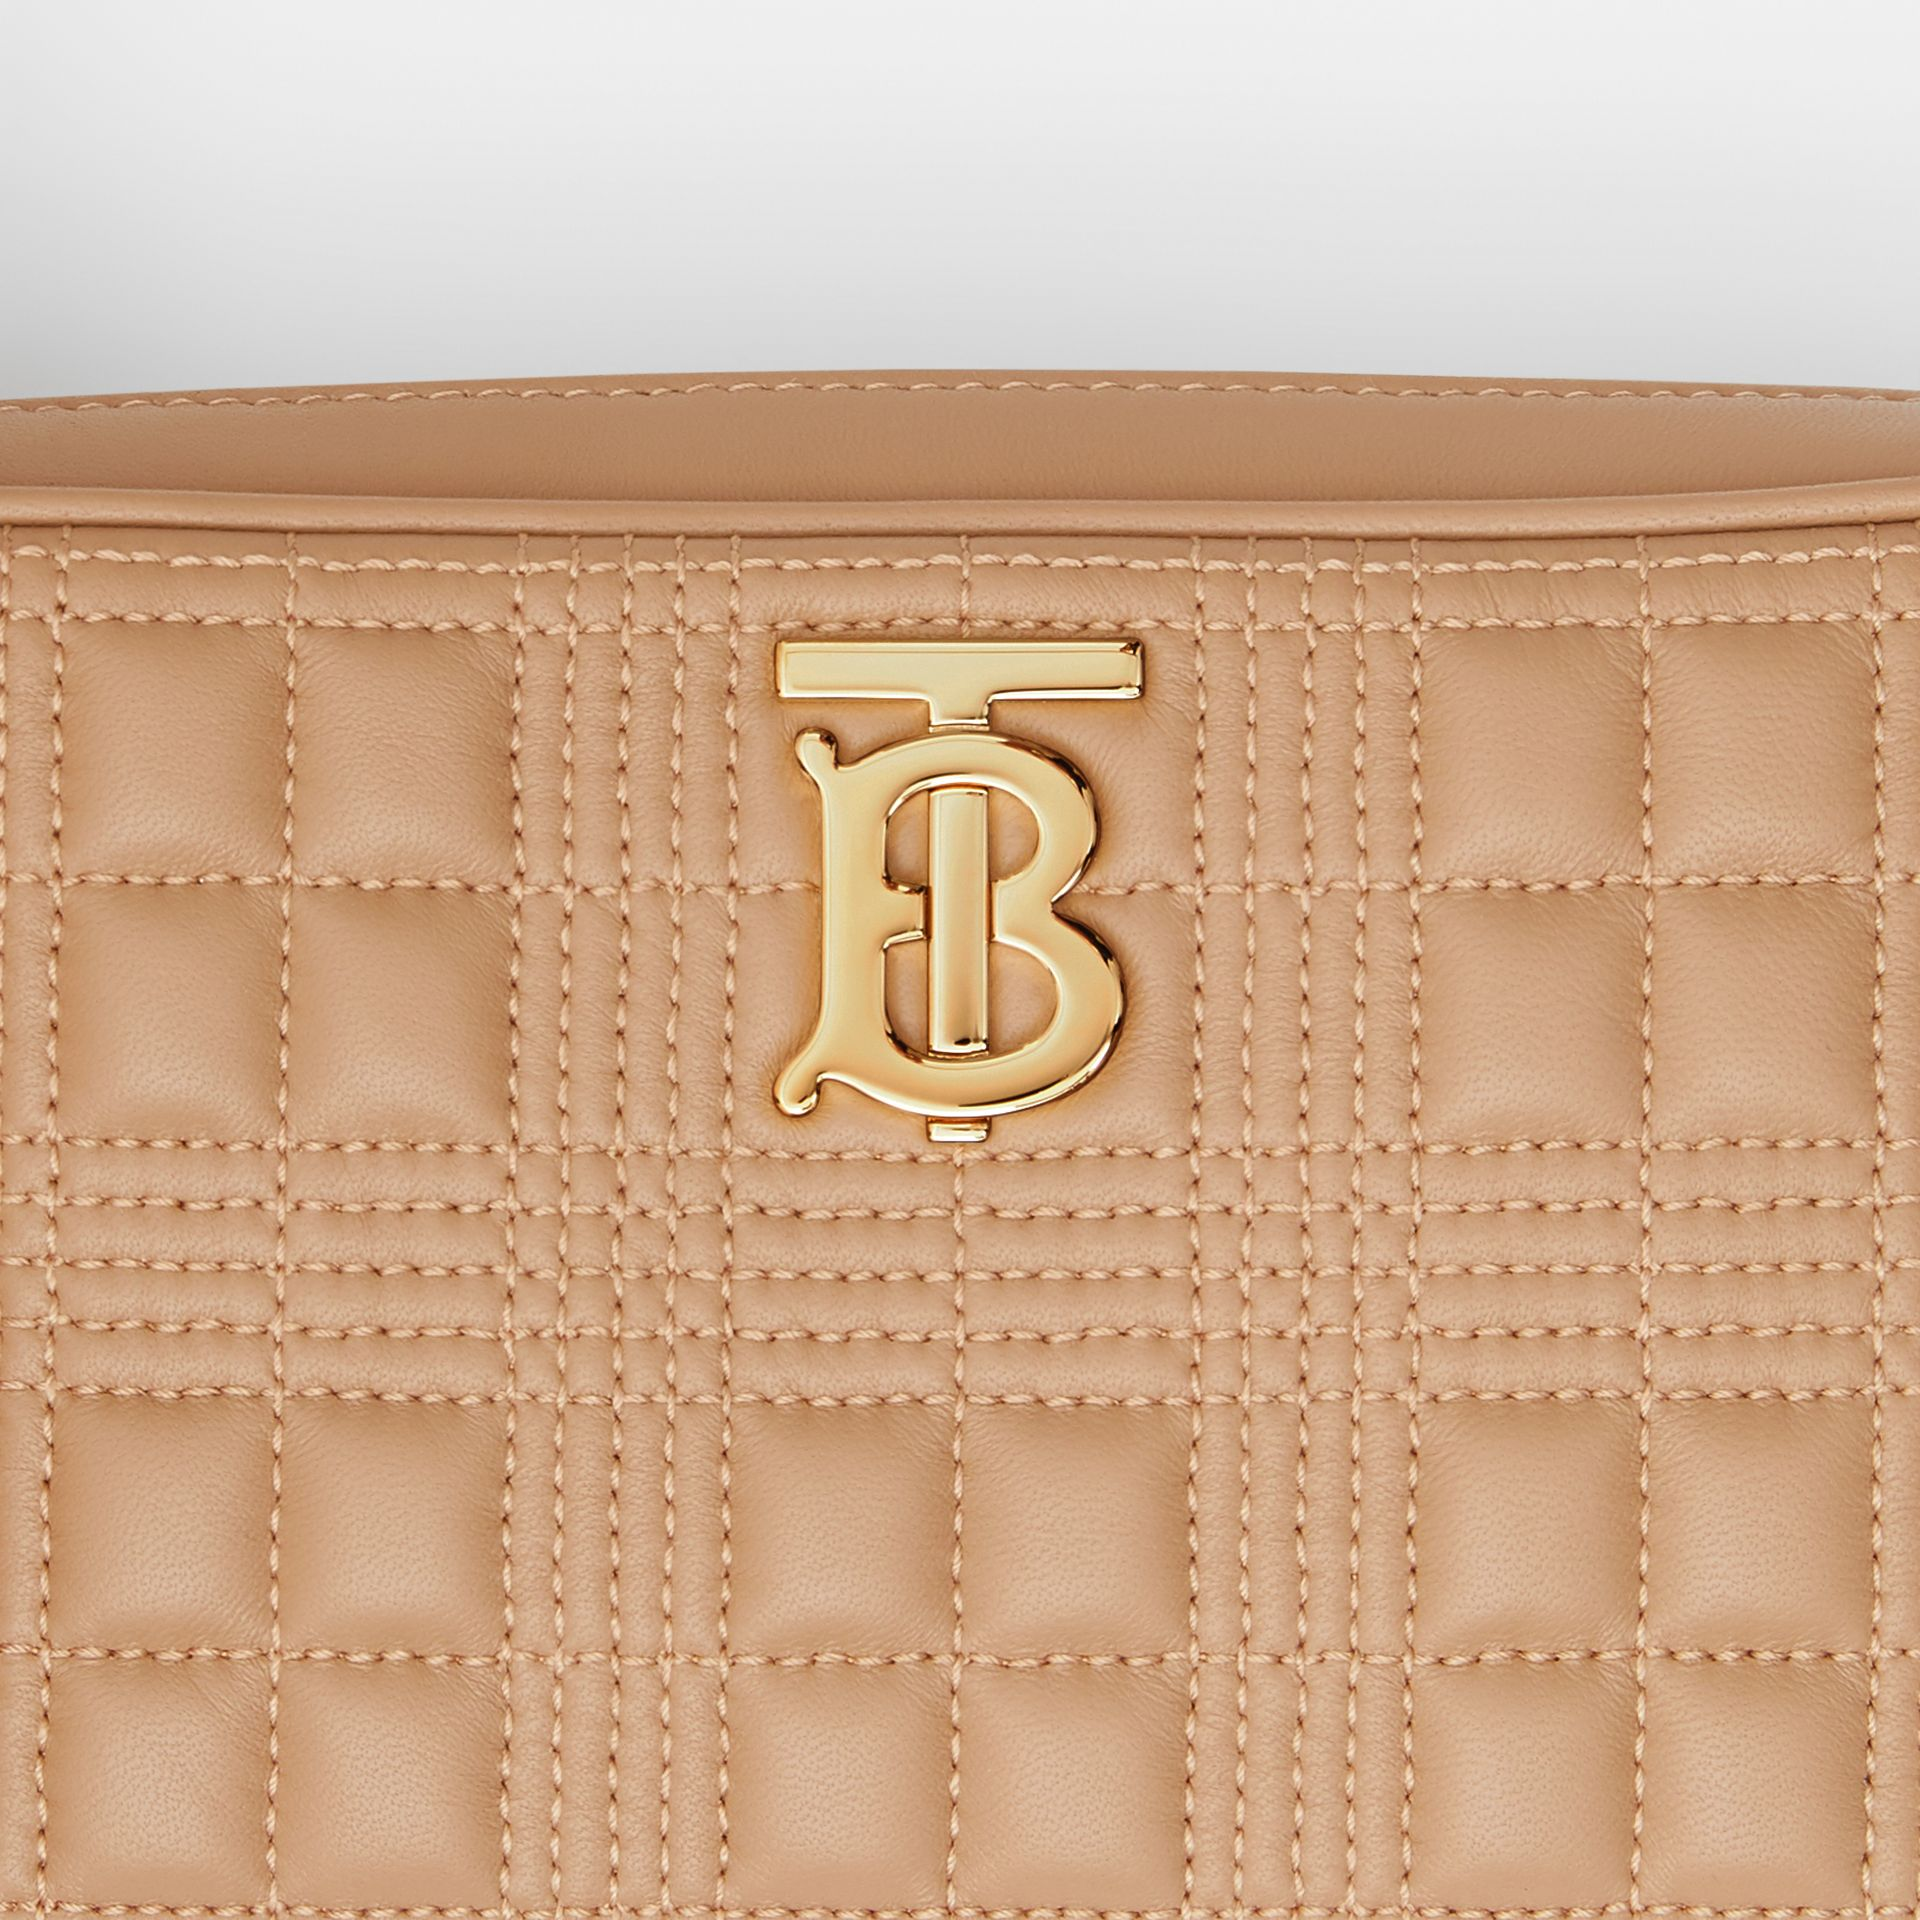 Quilted Check Lambskin Camera Bag in Camel - Women | Burberry - gallery image 1